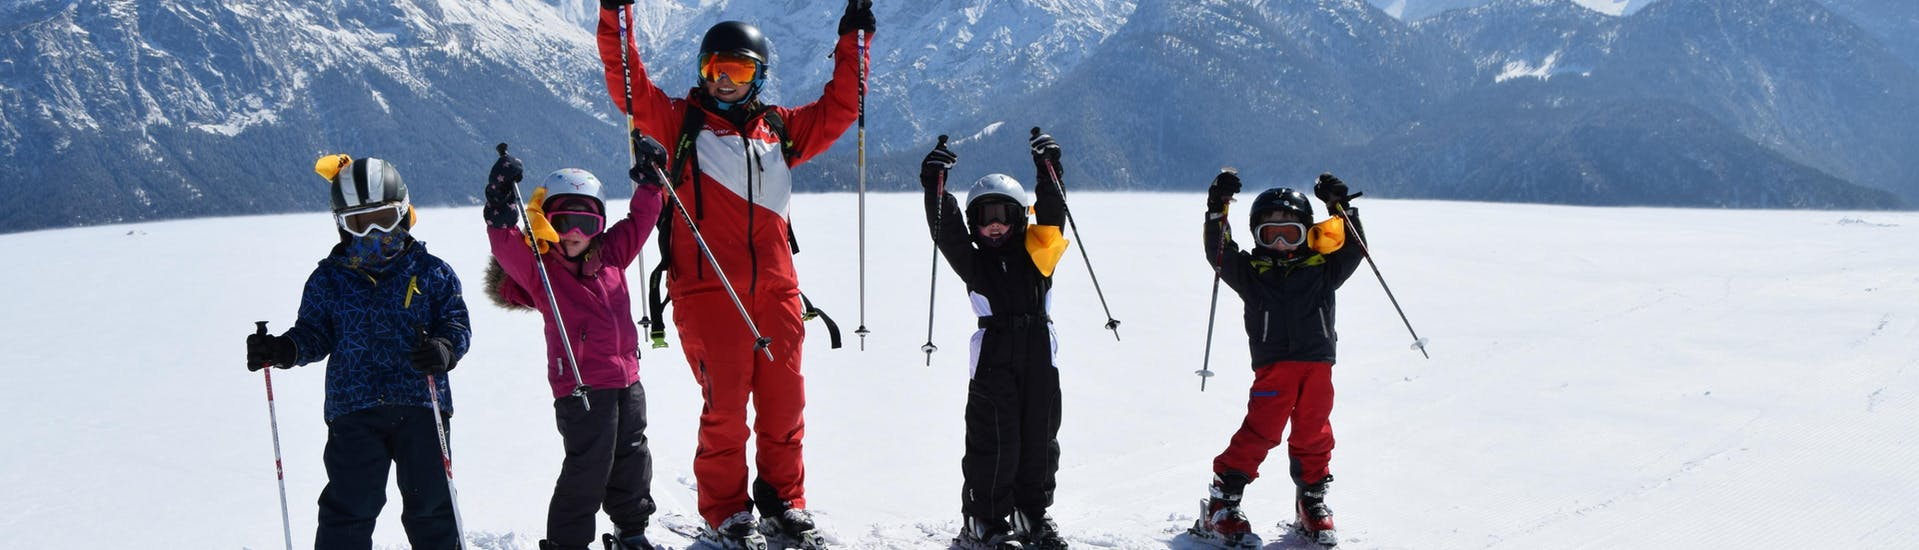 Teen Ski Lessons (11-15 y.) for Advanced Skiers